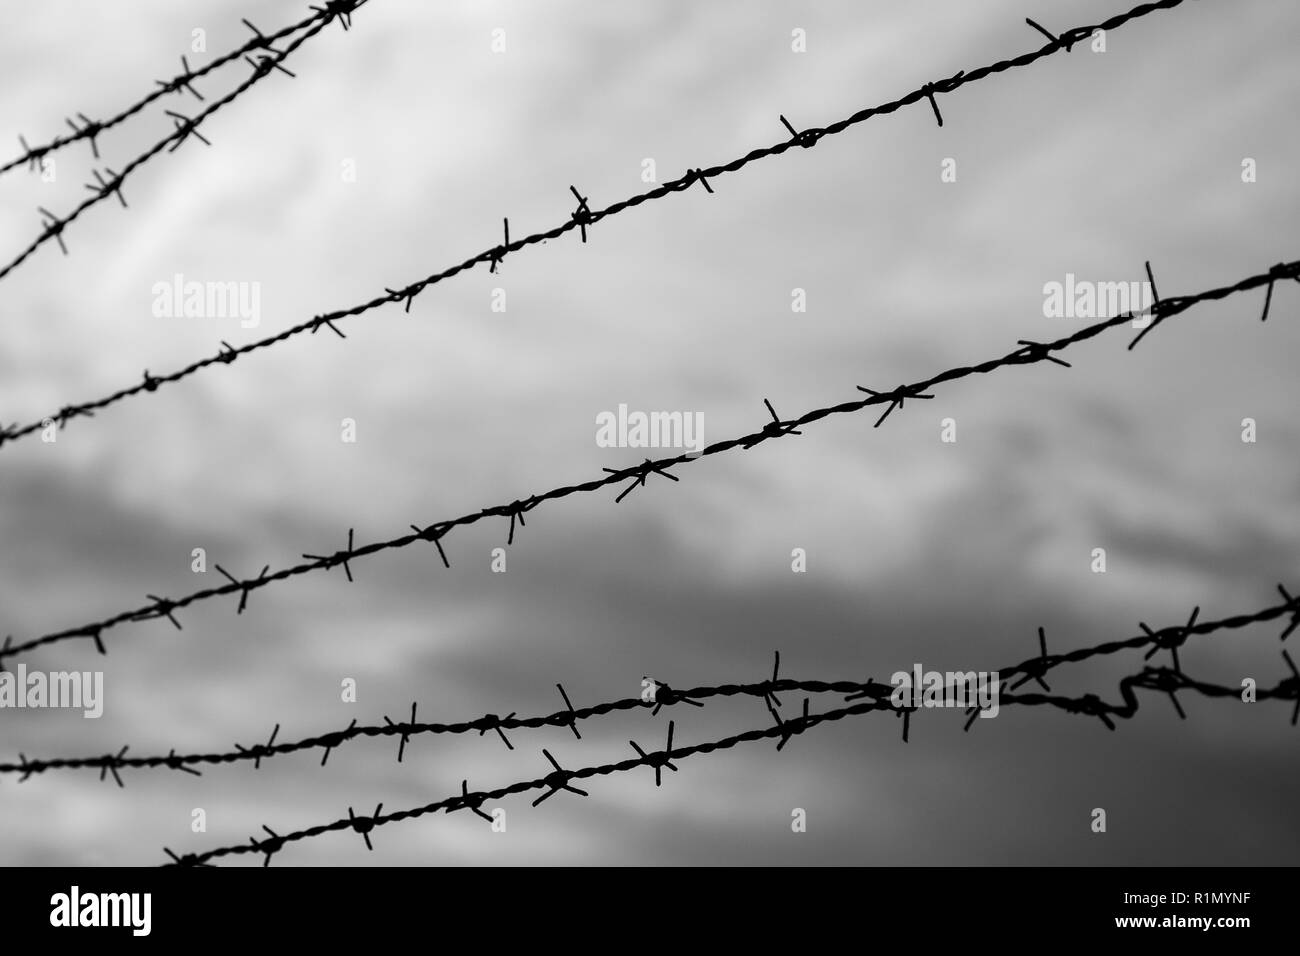 Silhouette of barbed wire fence against blurry cloudy sky in the evening in black and white. Focused on the foreground. - Stock Image